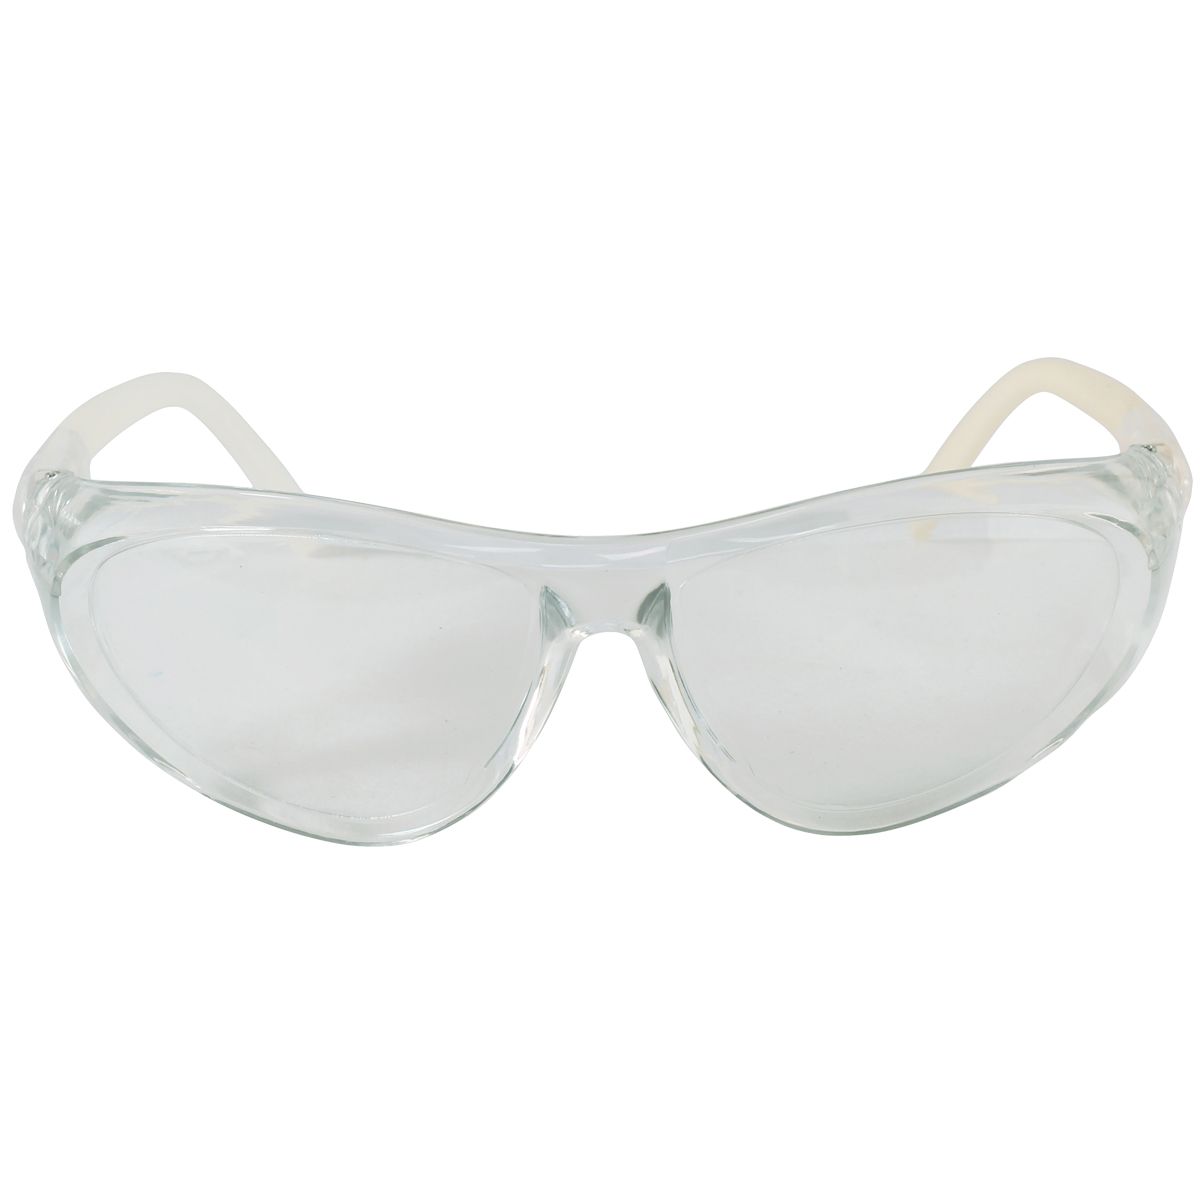 Clear Day Night Driving Goggles Sunglasses